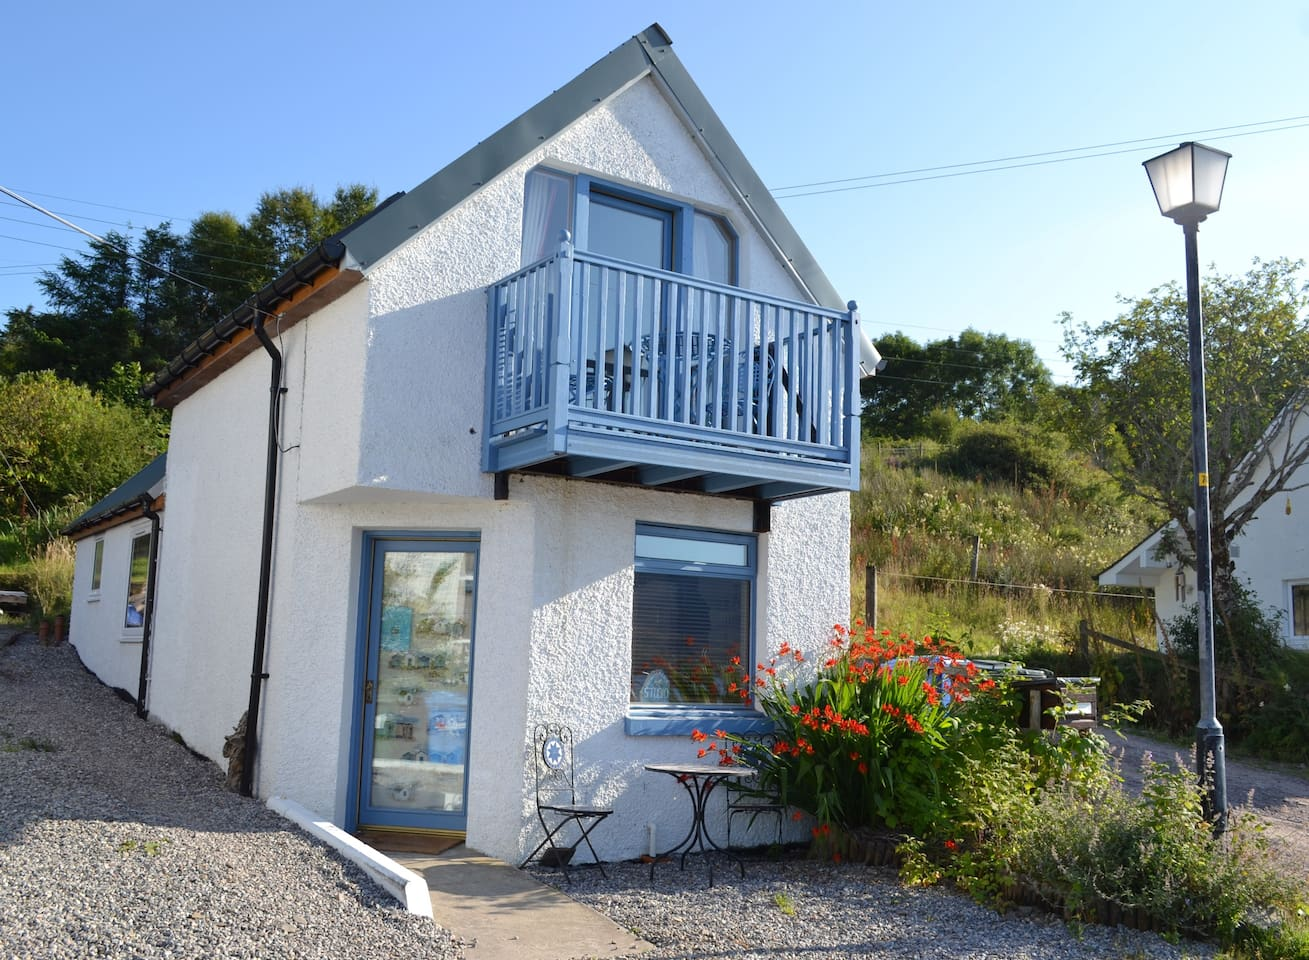 Craigellachie seaside studio is self contained and detached - with fabulous sea and mountain views